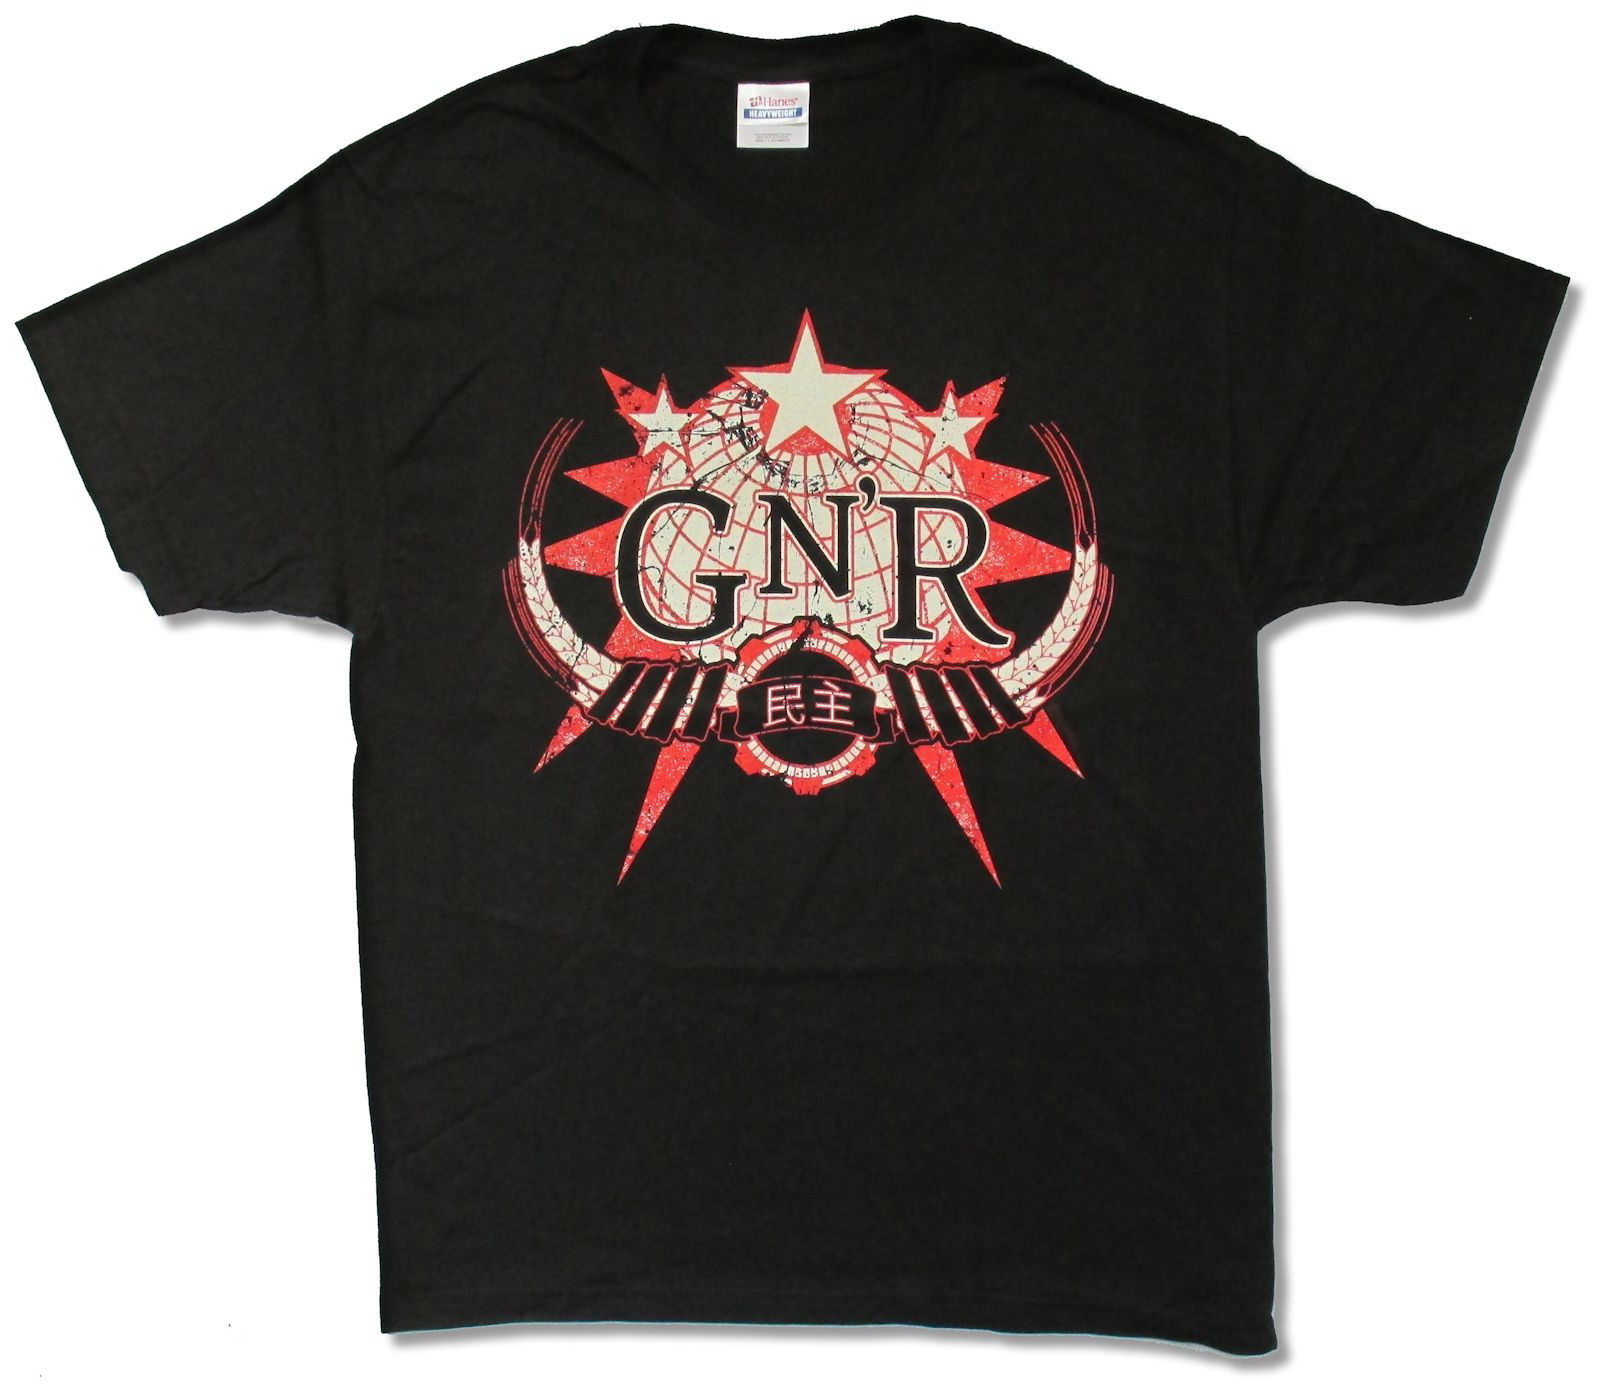 GUNS N ROSES GLOBE BLACK T-SHIRT NEW OFFICIAL ADULT GNR